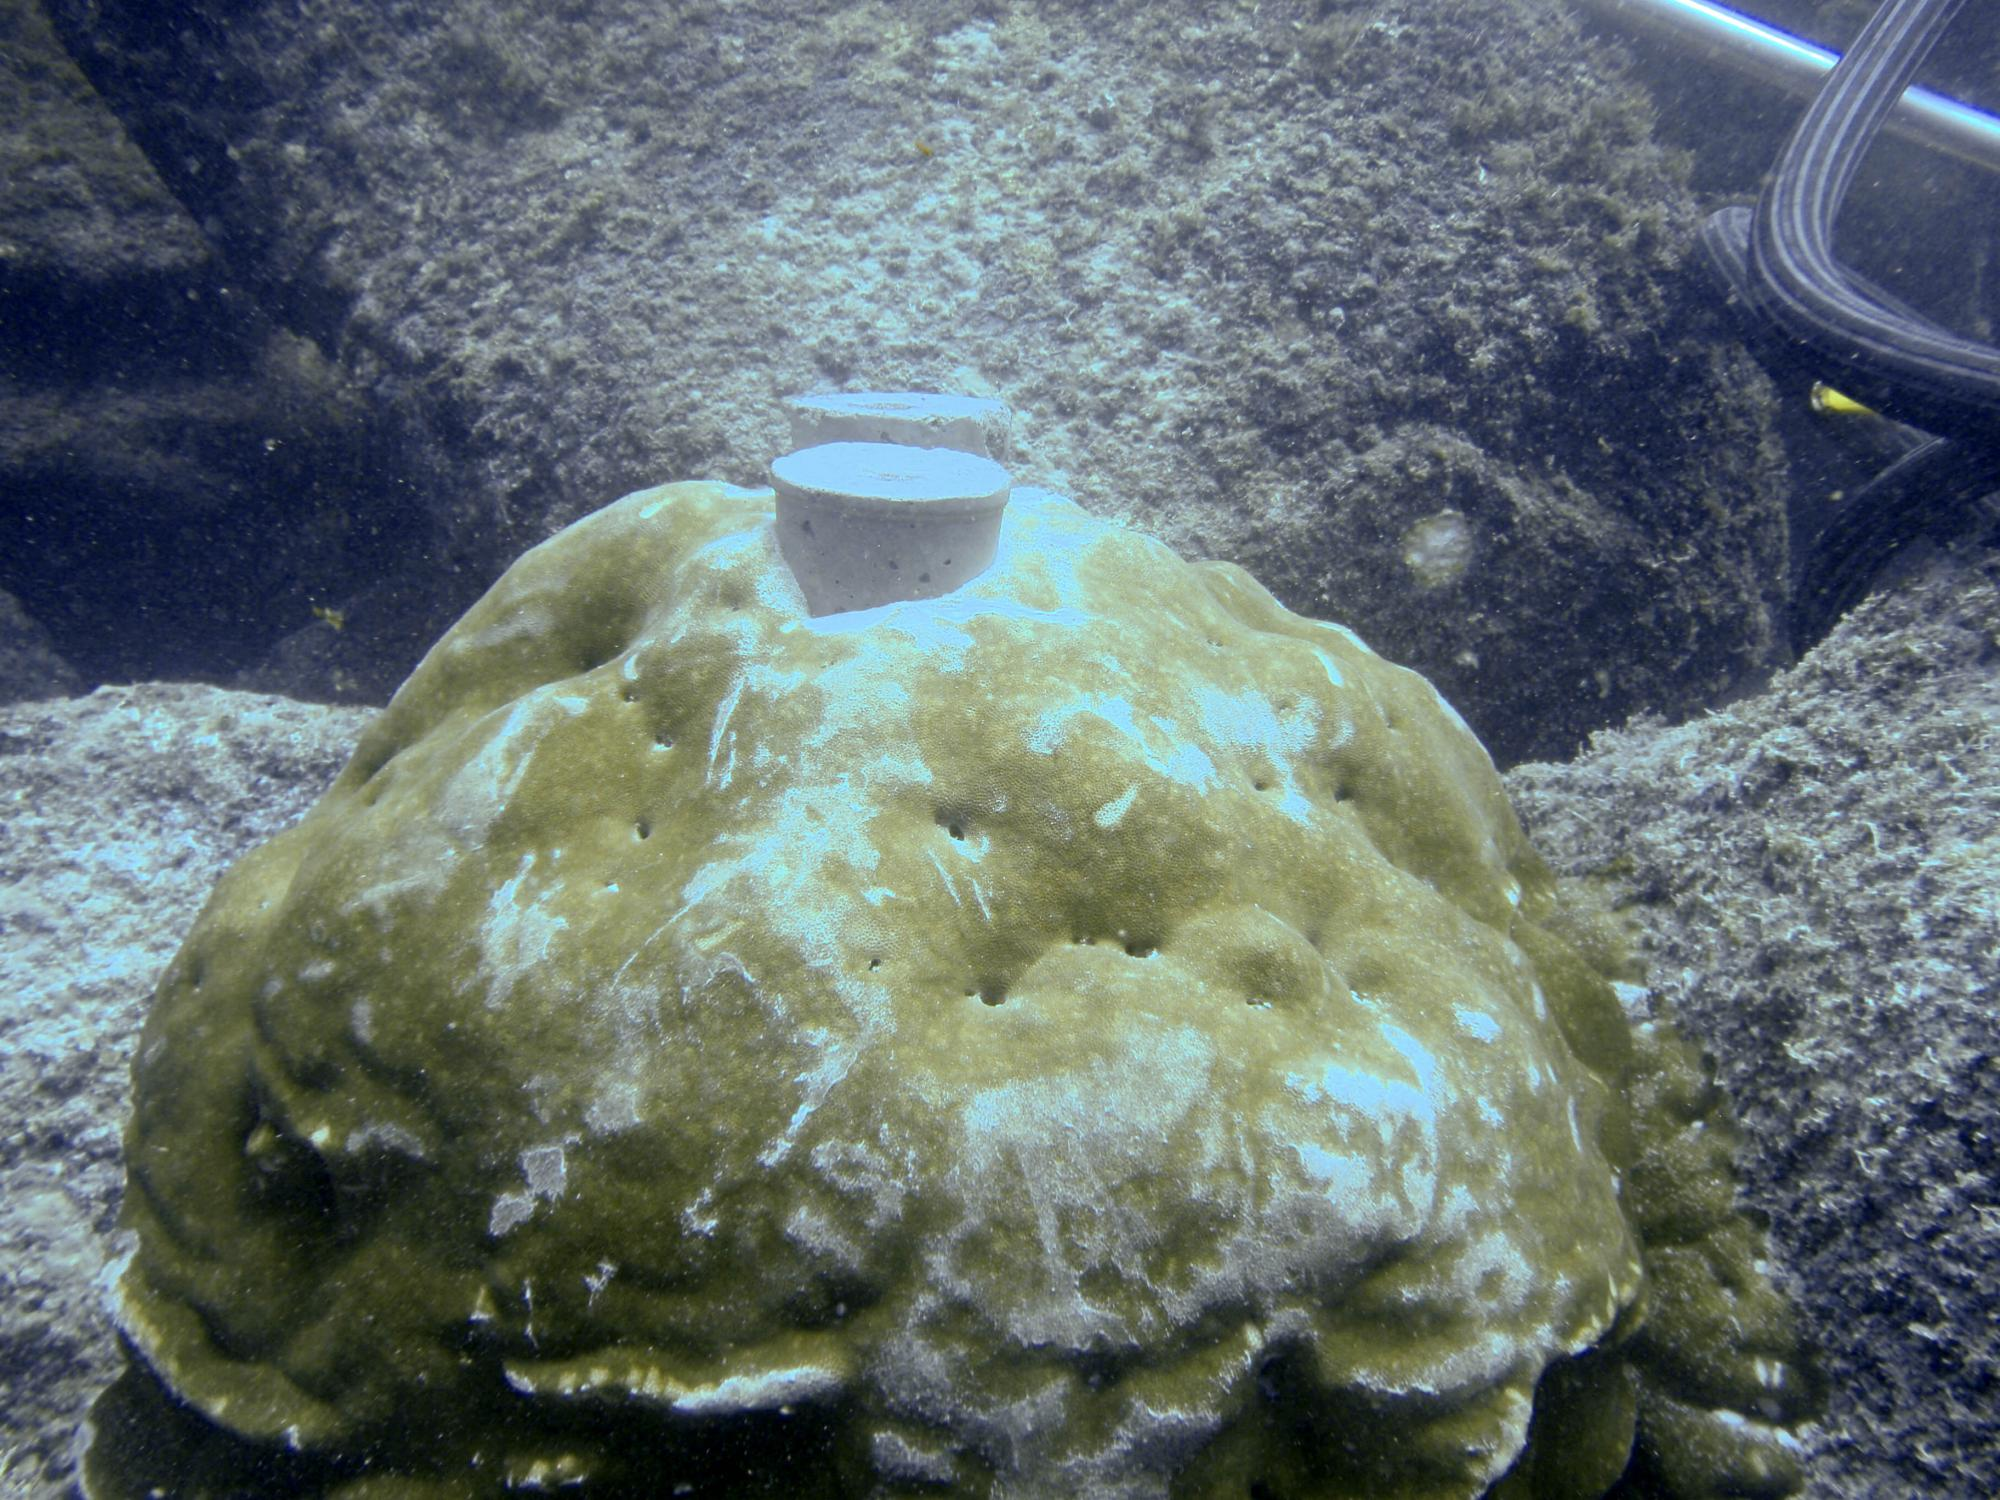 After removing two cores from this coral head near Wolf Island in the Galápagos, the UA-led team of researchers plugged the drill holes. The cement plugs help the coral grow over the holes and keep animals out of the holes.